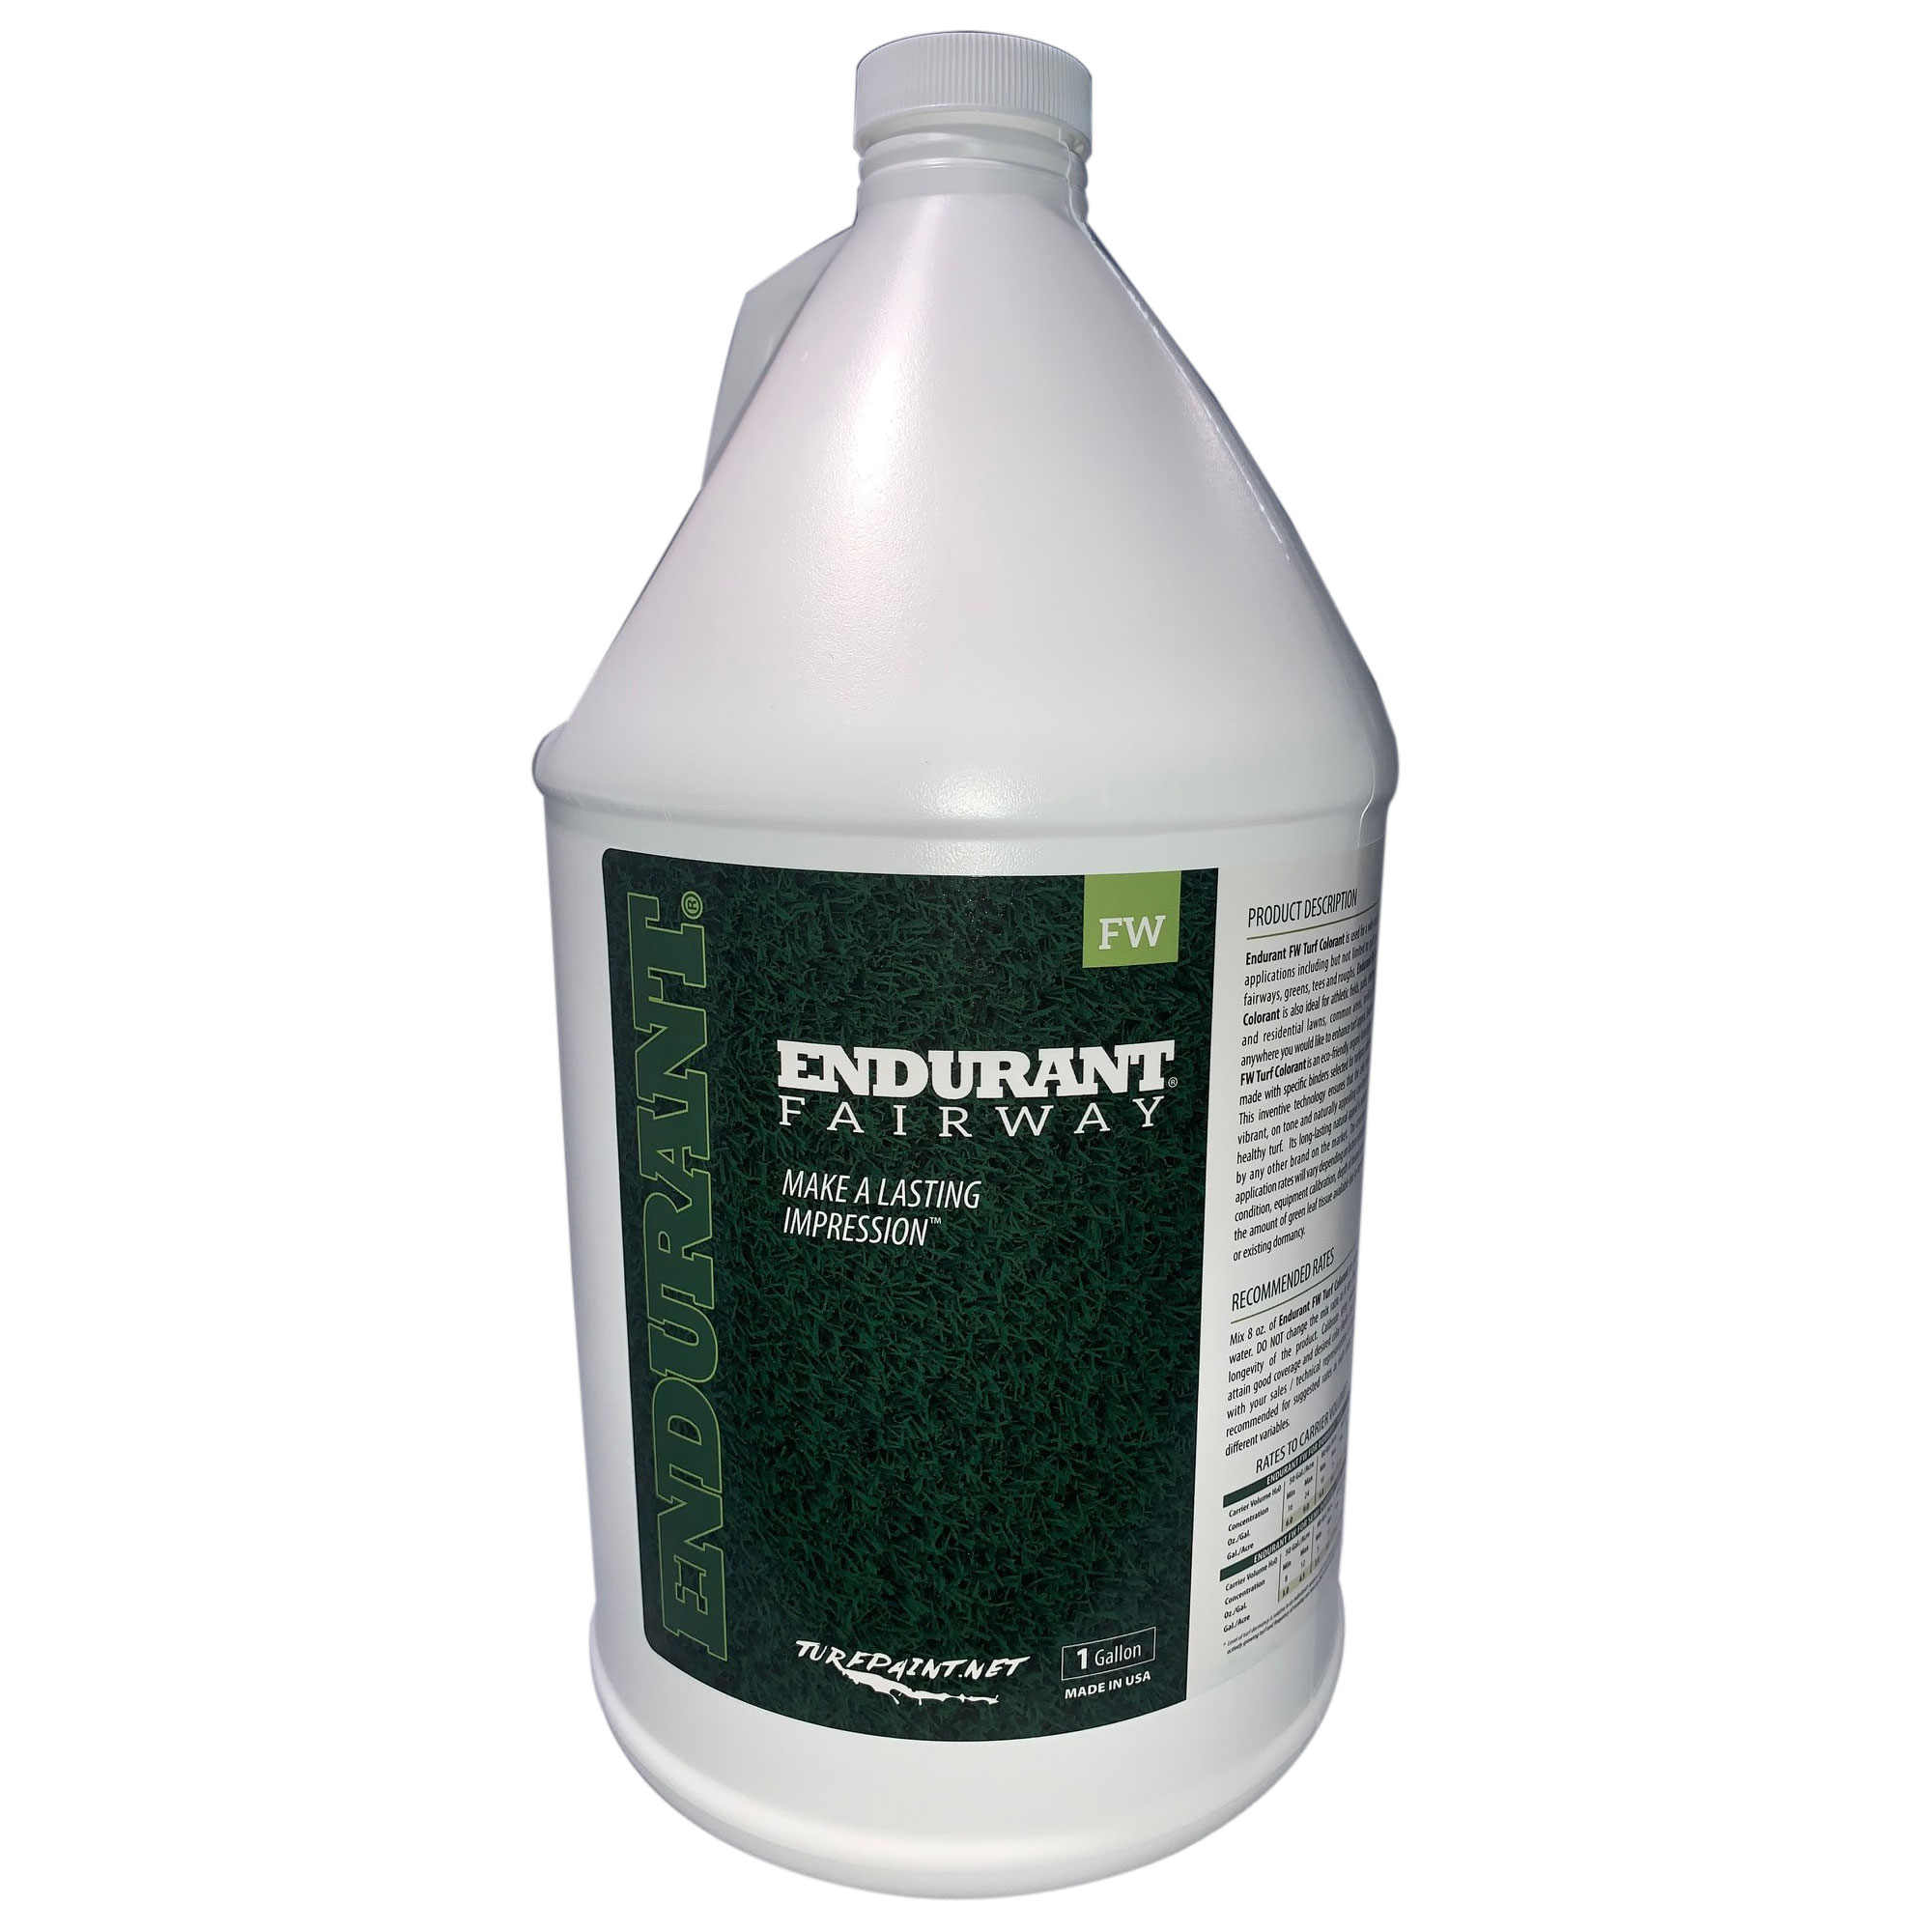 Endurant Fairway